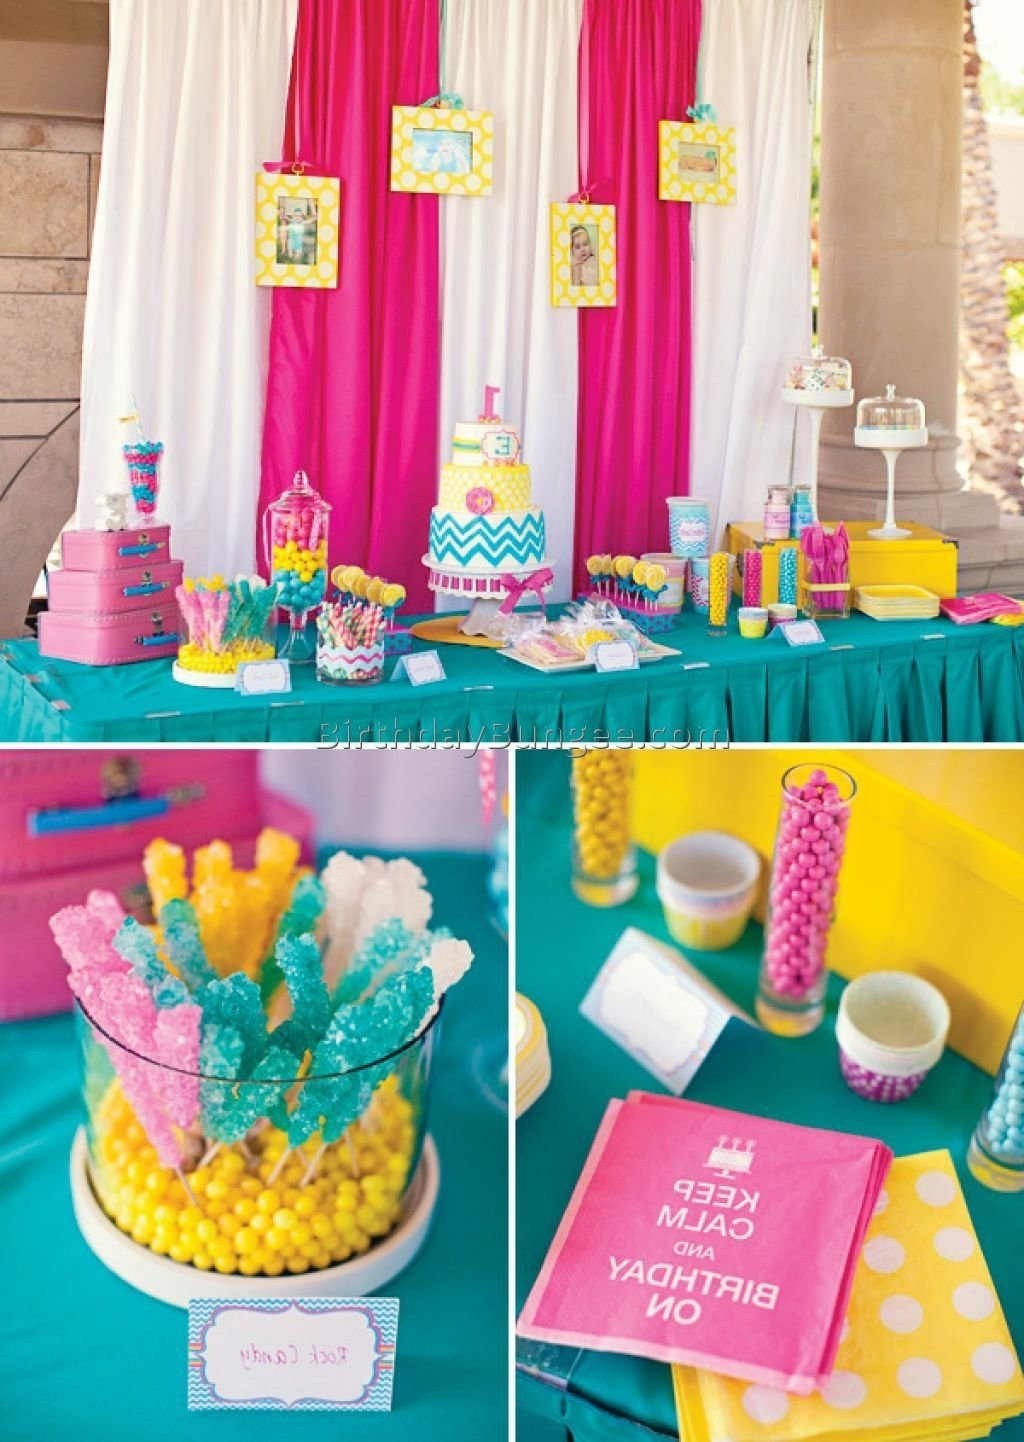 10 Great Birthday Party Ideas For Girls Age 6 birthday party ideas adults 6 best birthday resource gallery blue